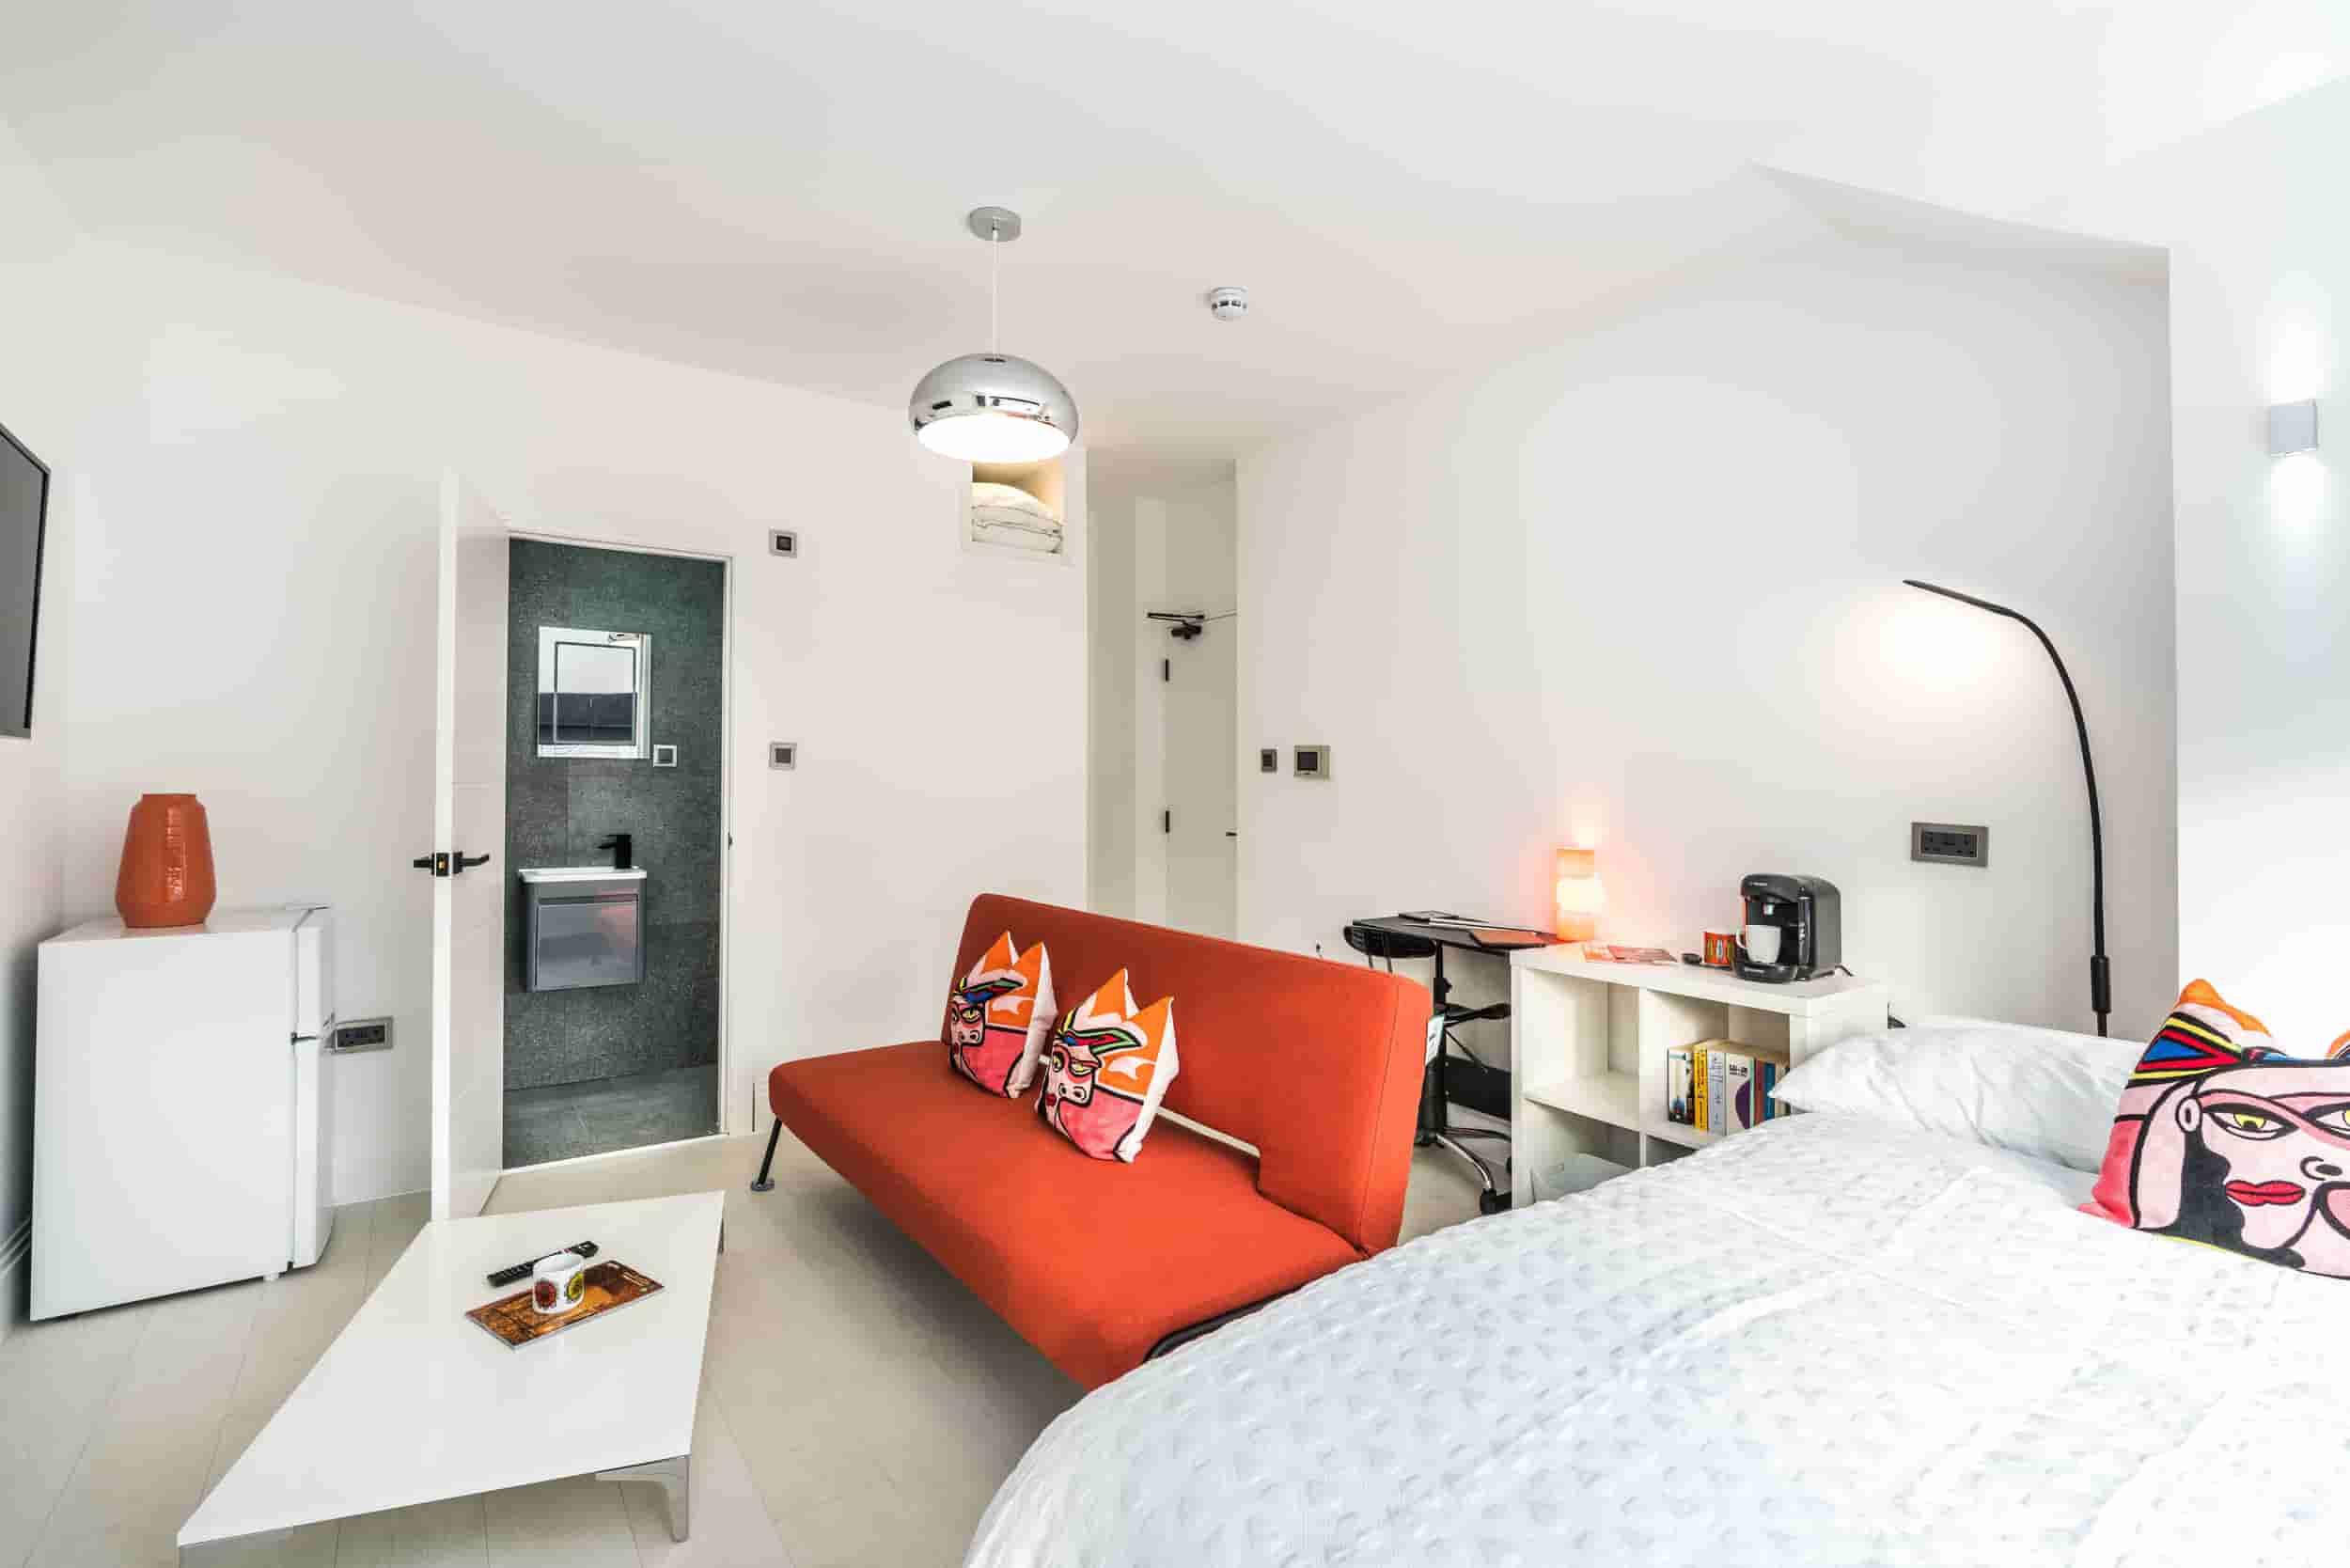 Epic 5 Bed HMO London For Sale